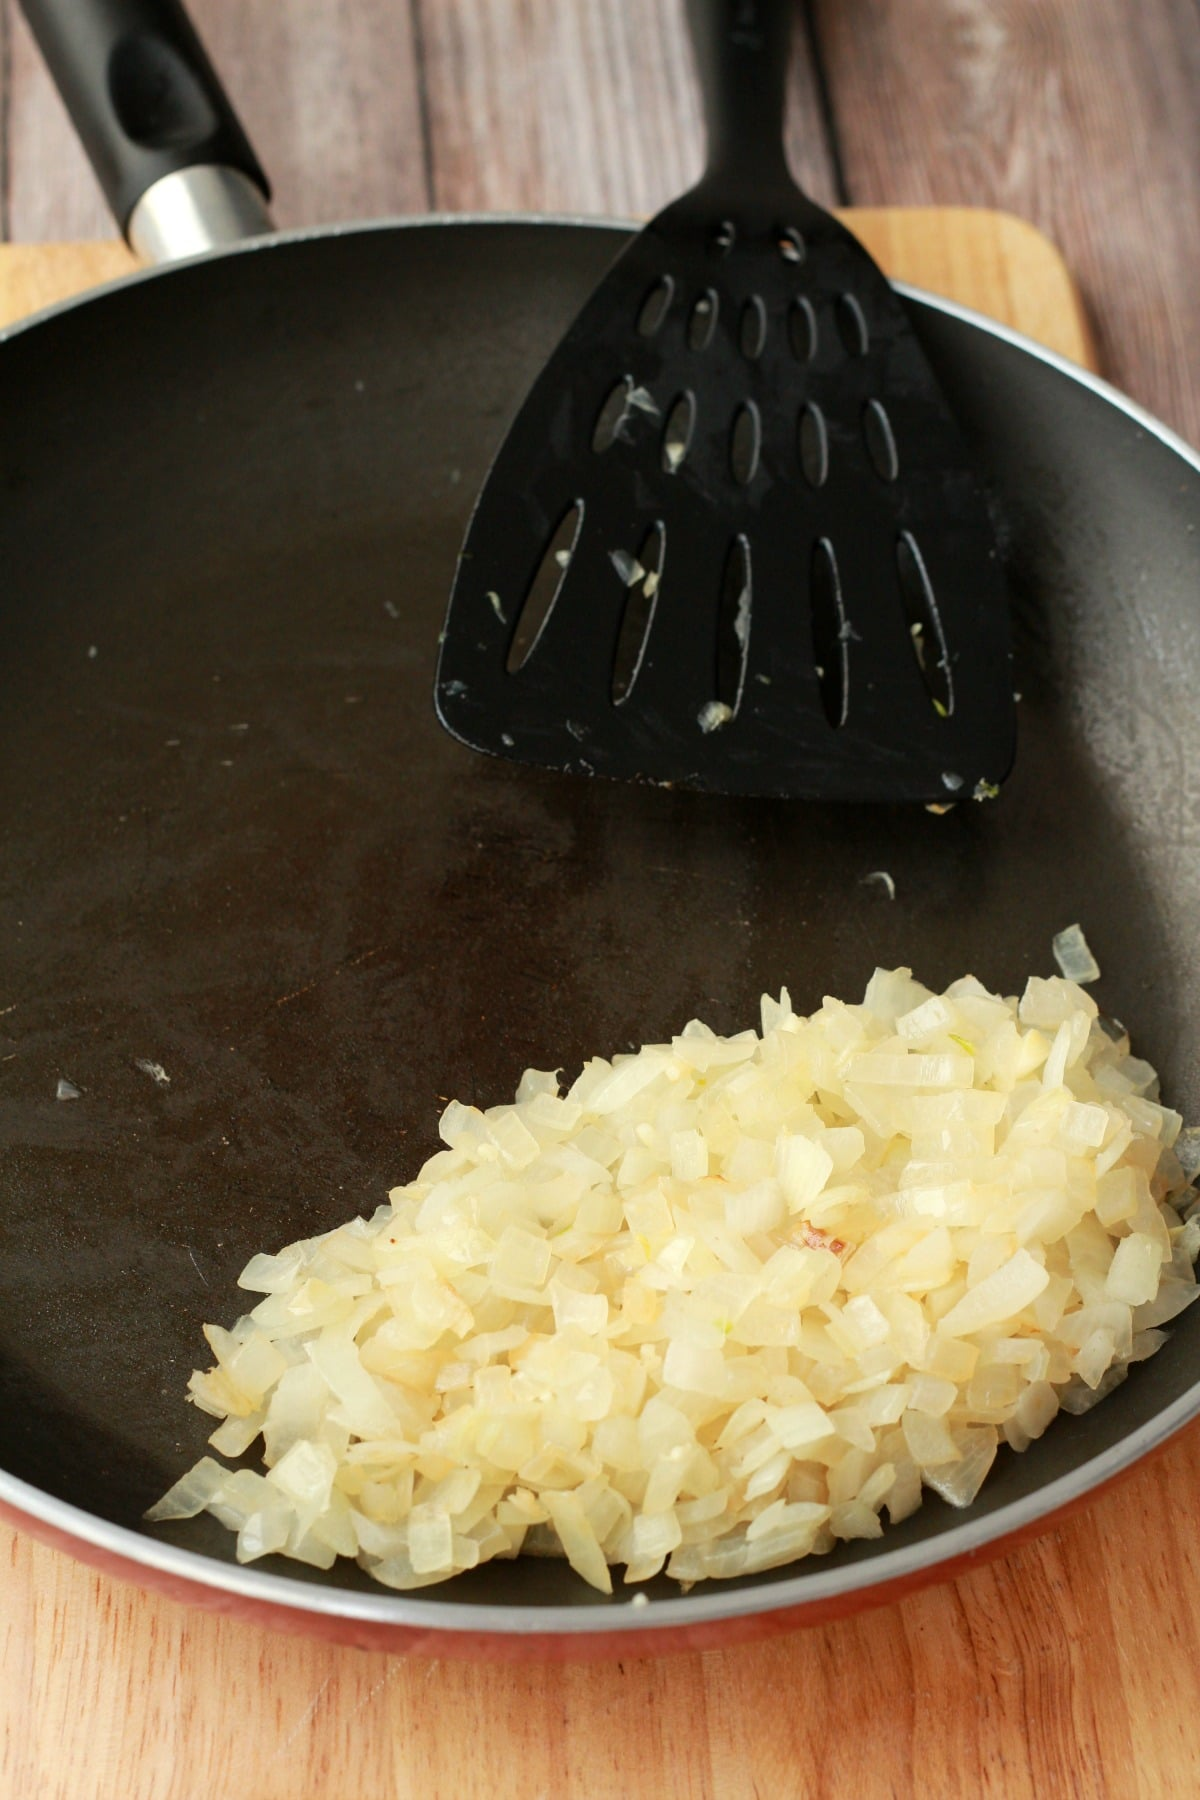 Onions and garlic frying in a pan.